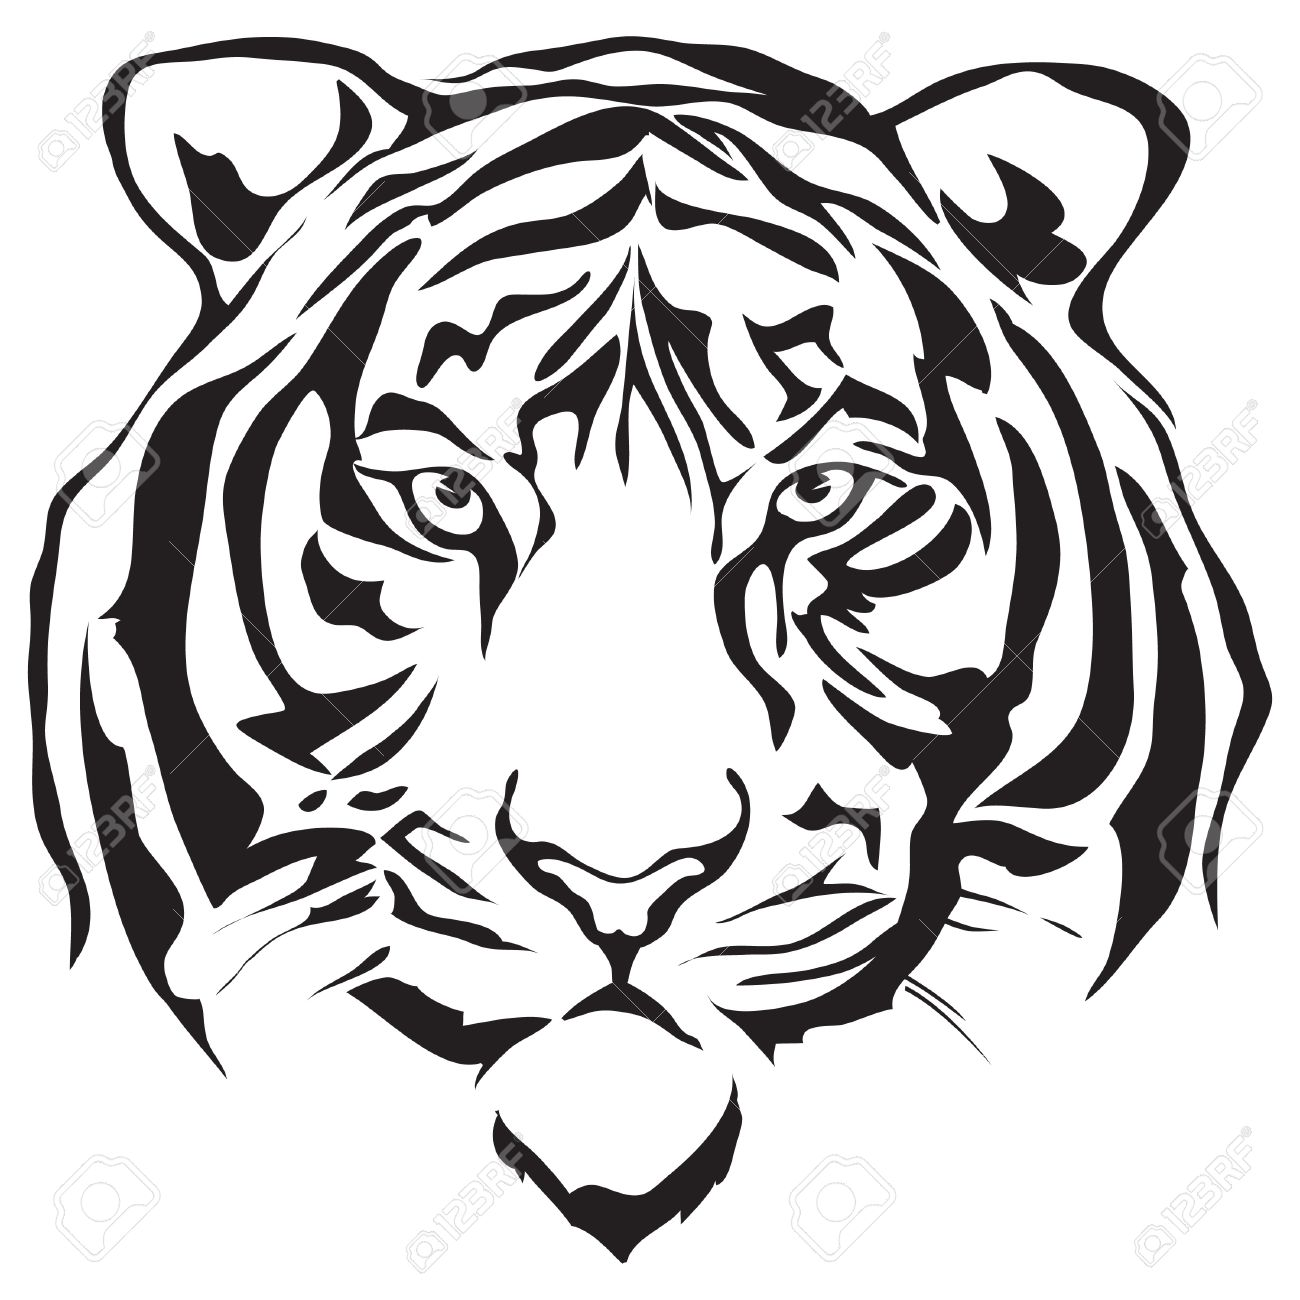 Amur Tiger clipart #10, Download drawings